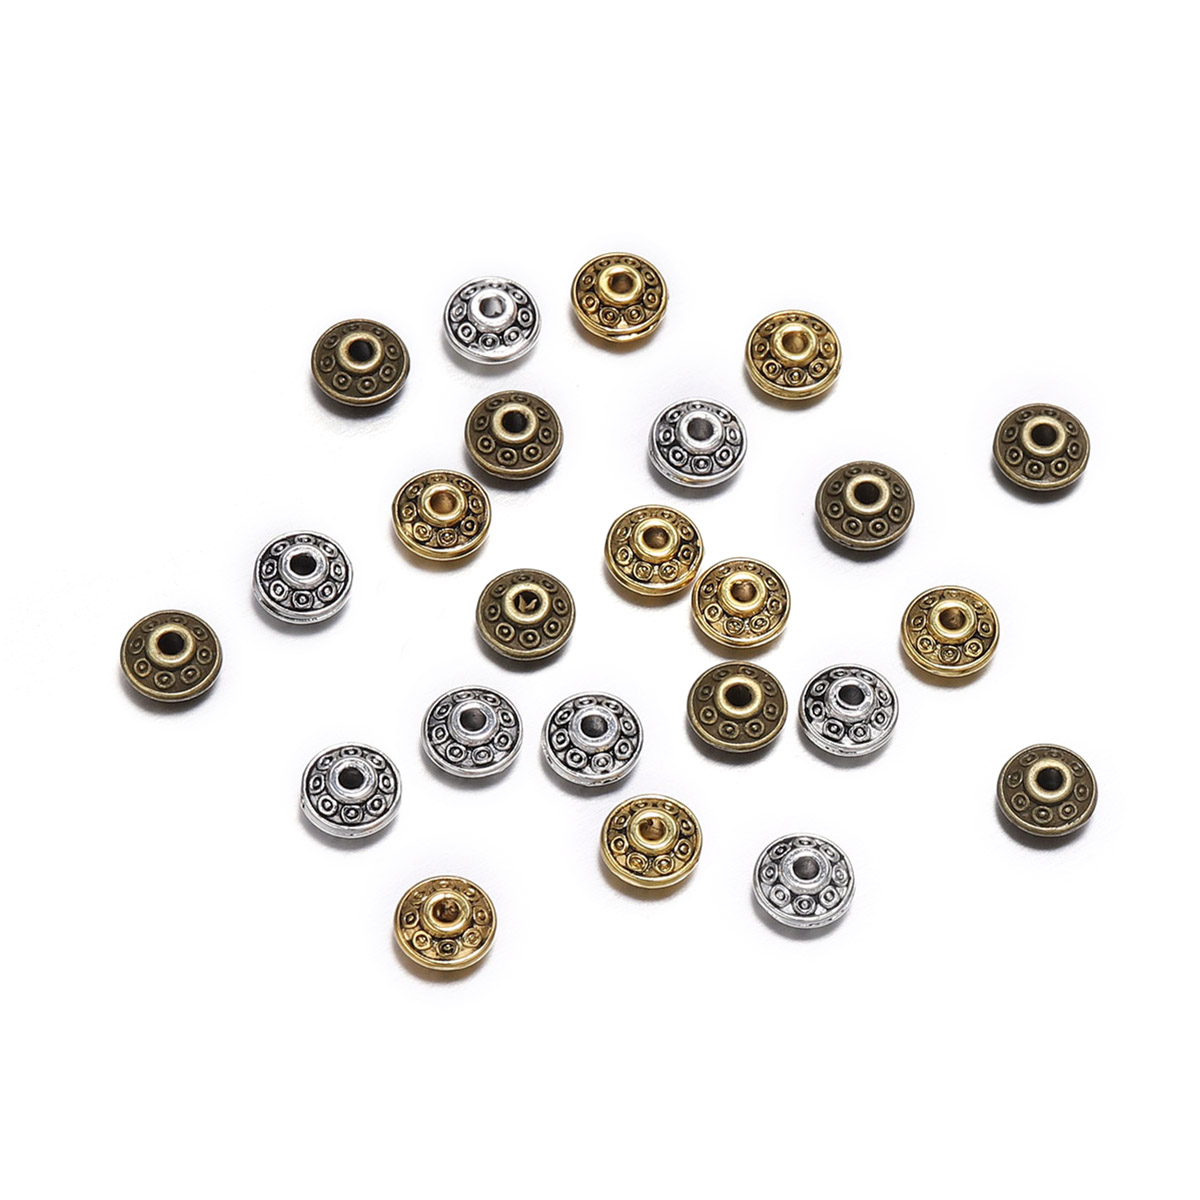 Tibetan Flower Spacer Beads 8mm Antique Bronze 50 Pcs Art Hobby DIY Jewellery